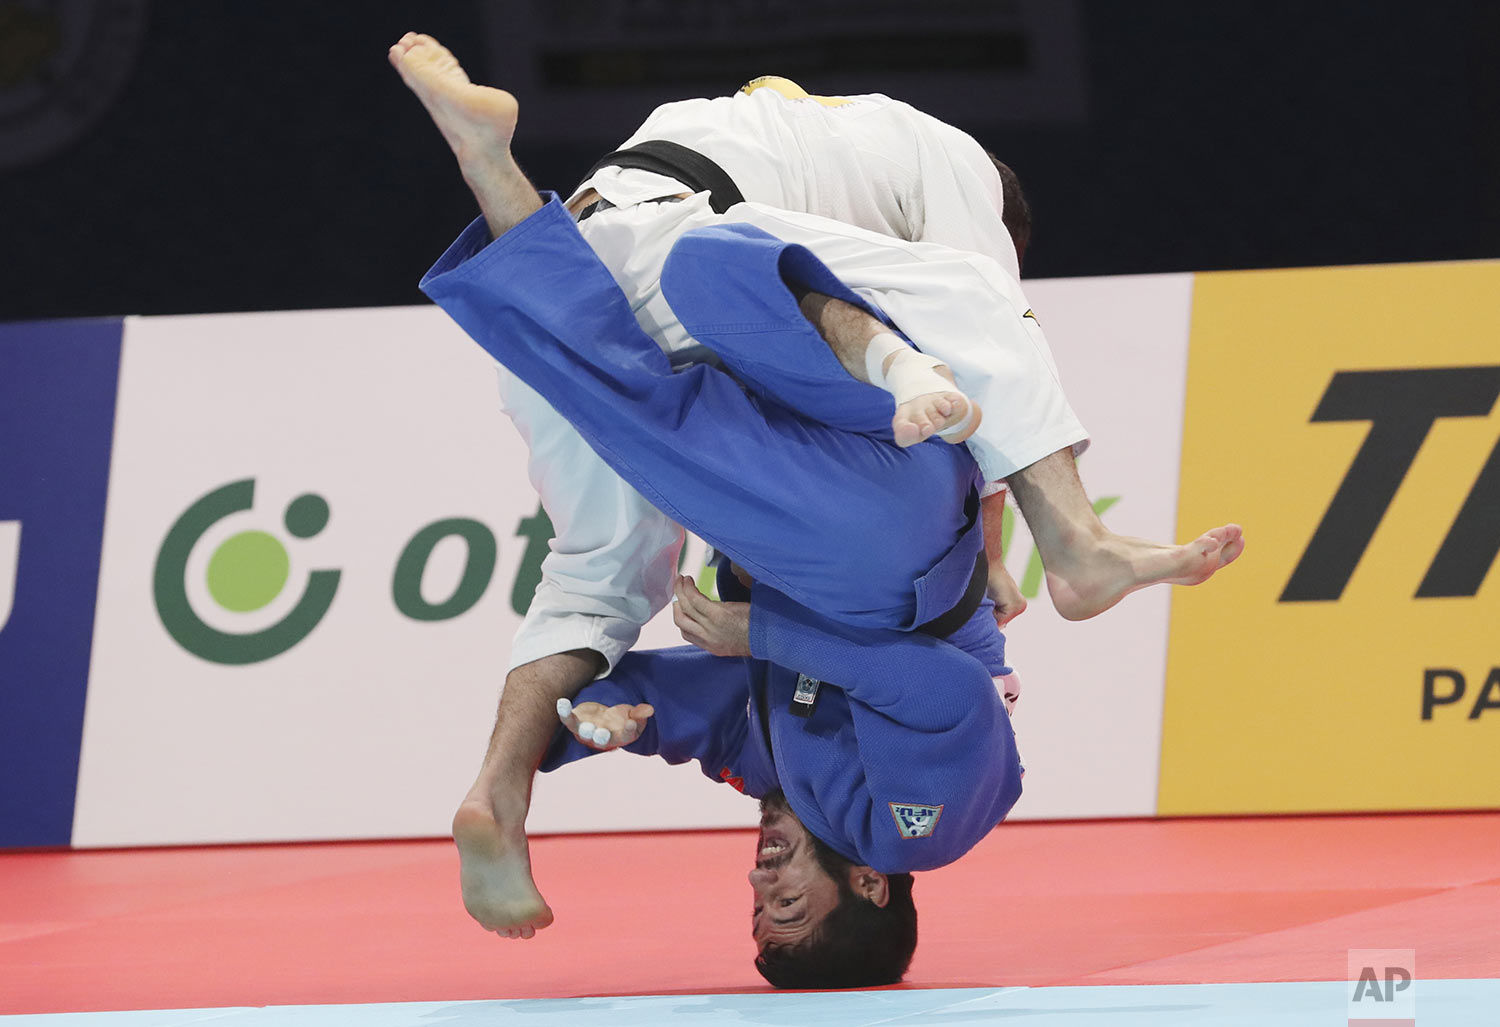 Lukhumi Chkhvimiani, of Georgia, top, competes against Sharafuddin Lutfillaev, of Uzbekistan, during a men's -60 kilogram final of the World Judo Championships in Tokyo, Sunday, Aug. 25, 2019. (AP Photo/Koji Sasahara)